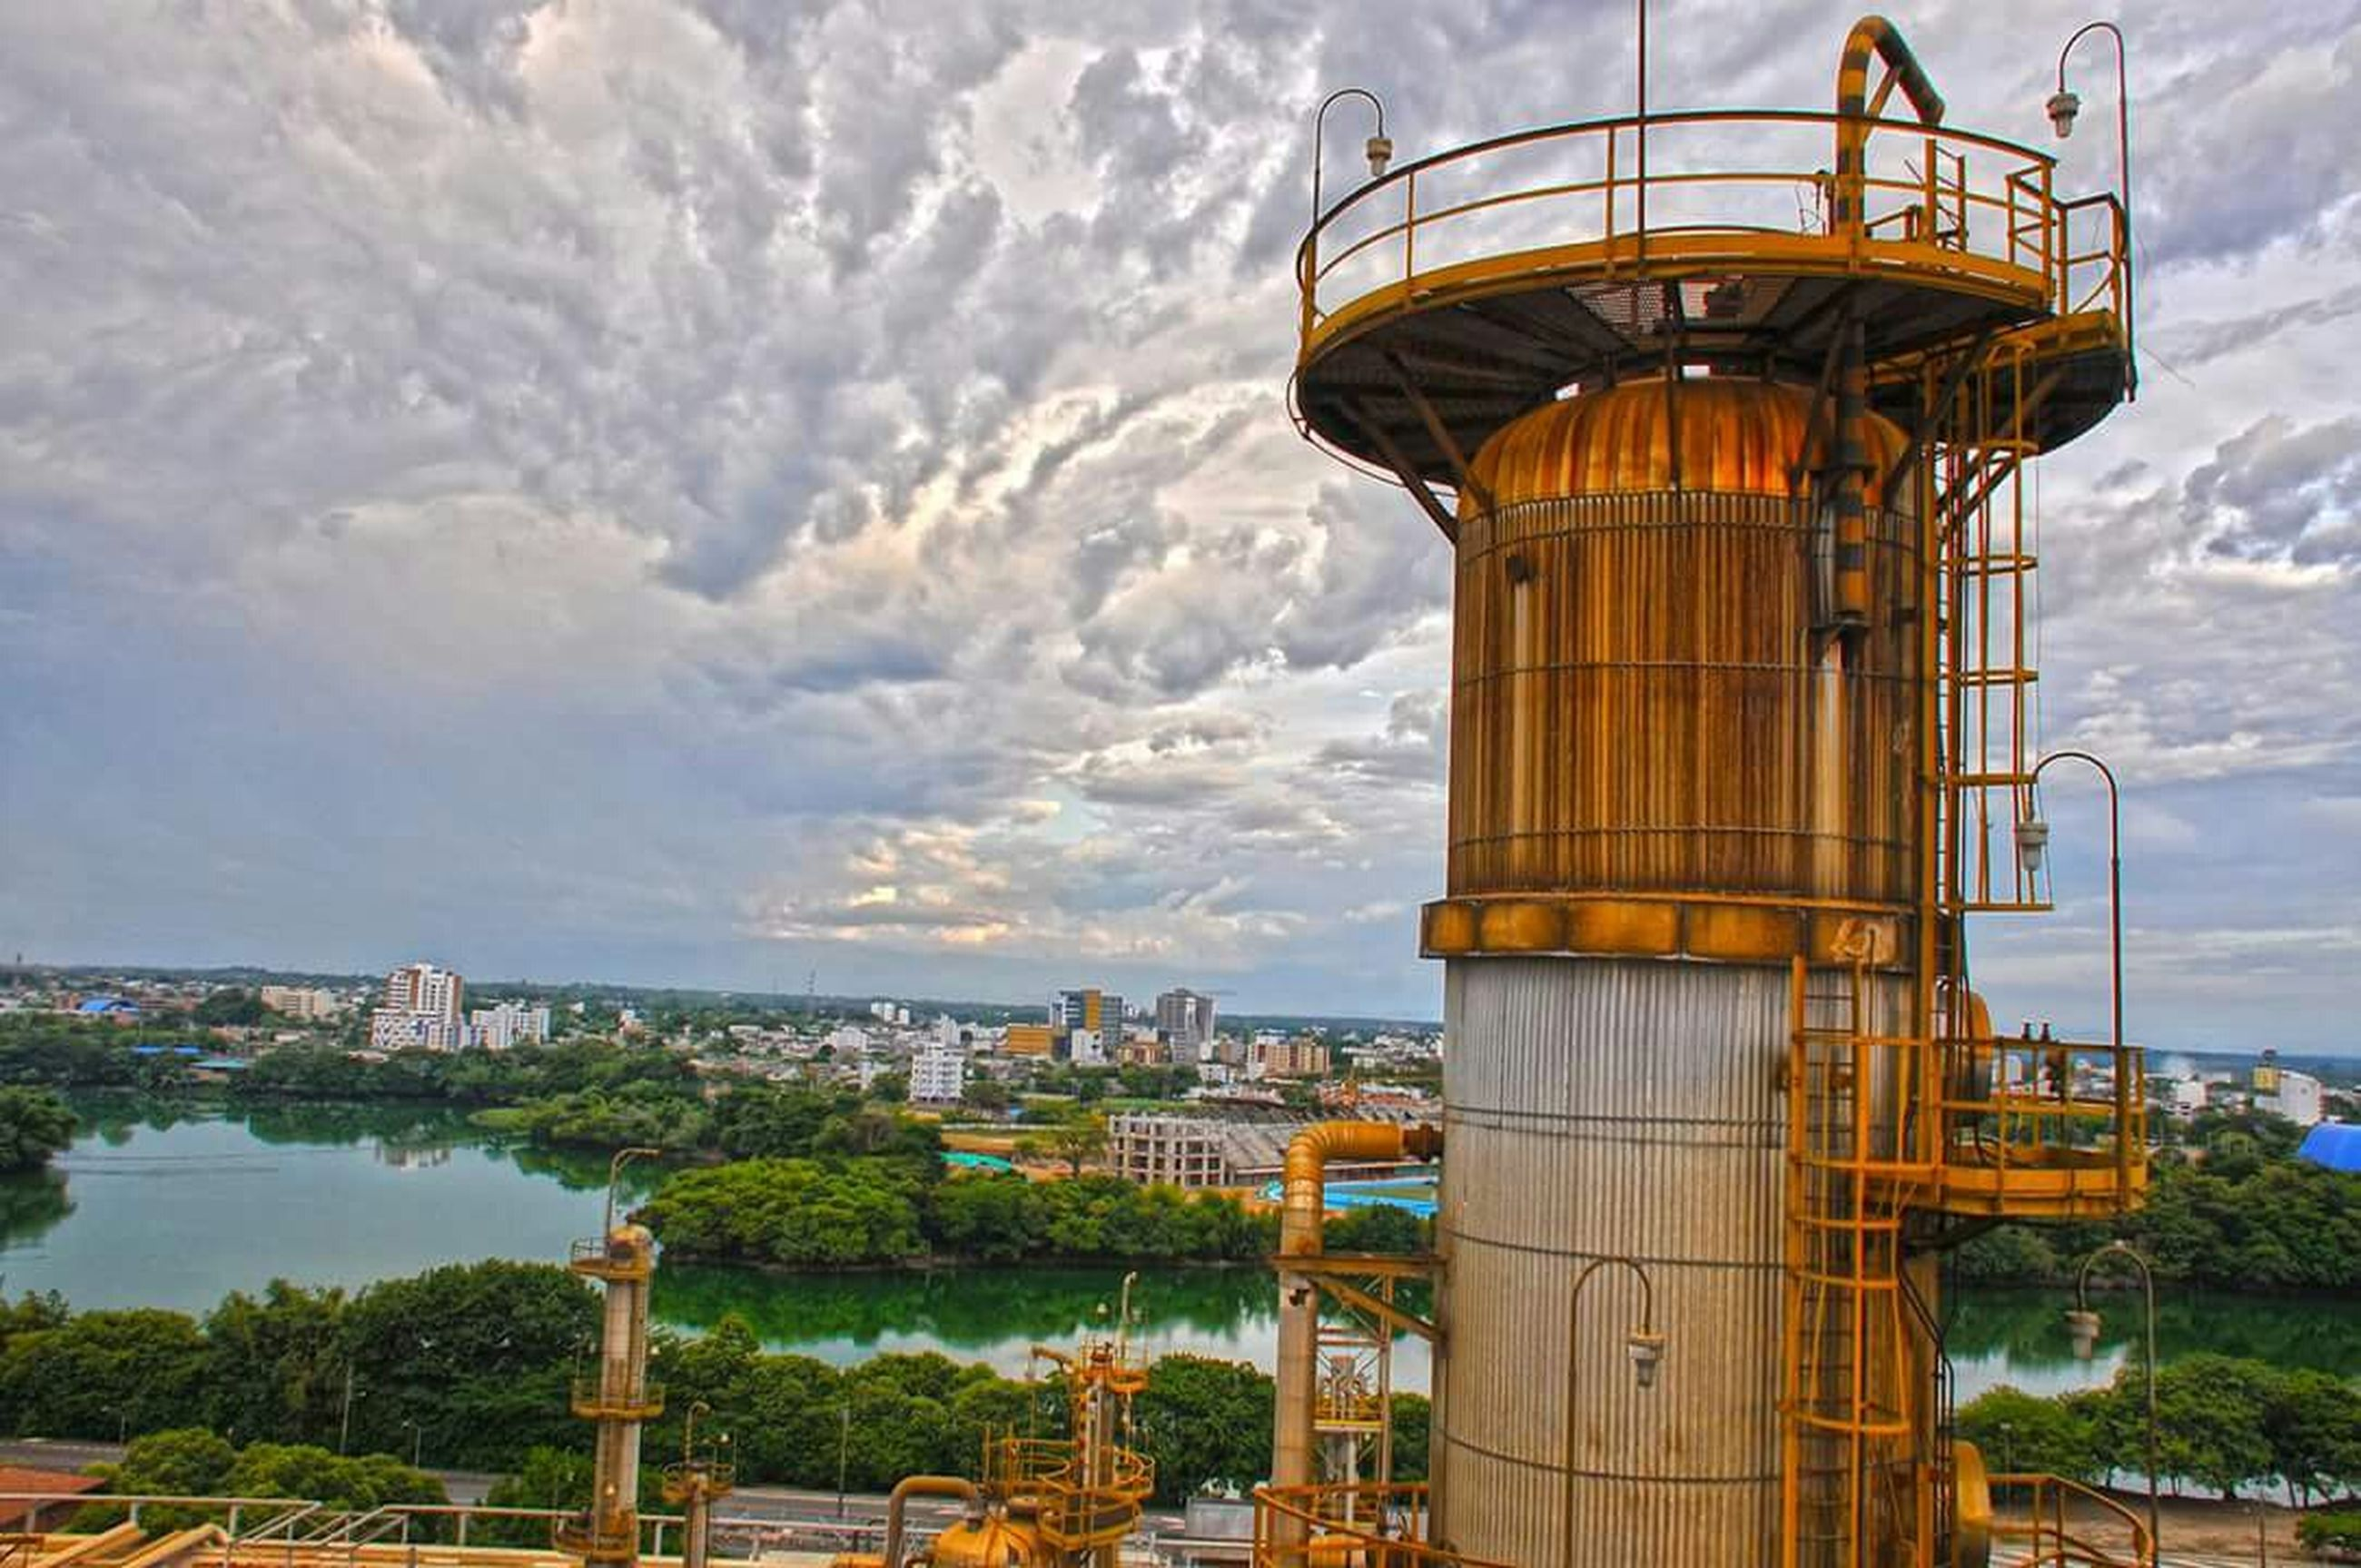 architecture, built structure, sky, building exterior, cloud - sky, cloudy, cloud, city, tower, outdoors, tree, day, low angle view, travel destinations, no people, connection, incidental people, river, railing, residential building